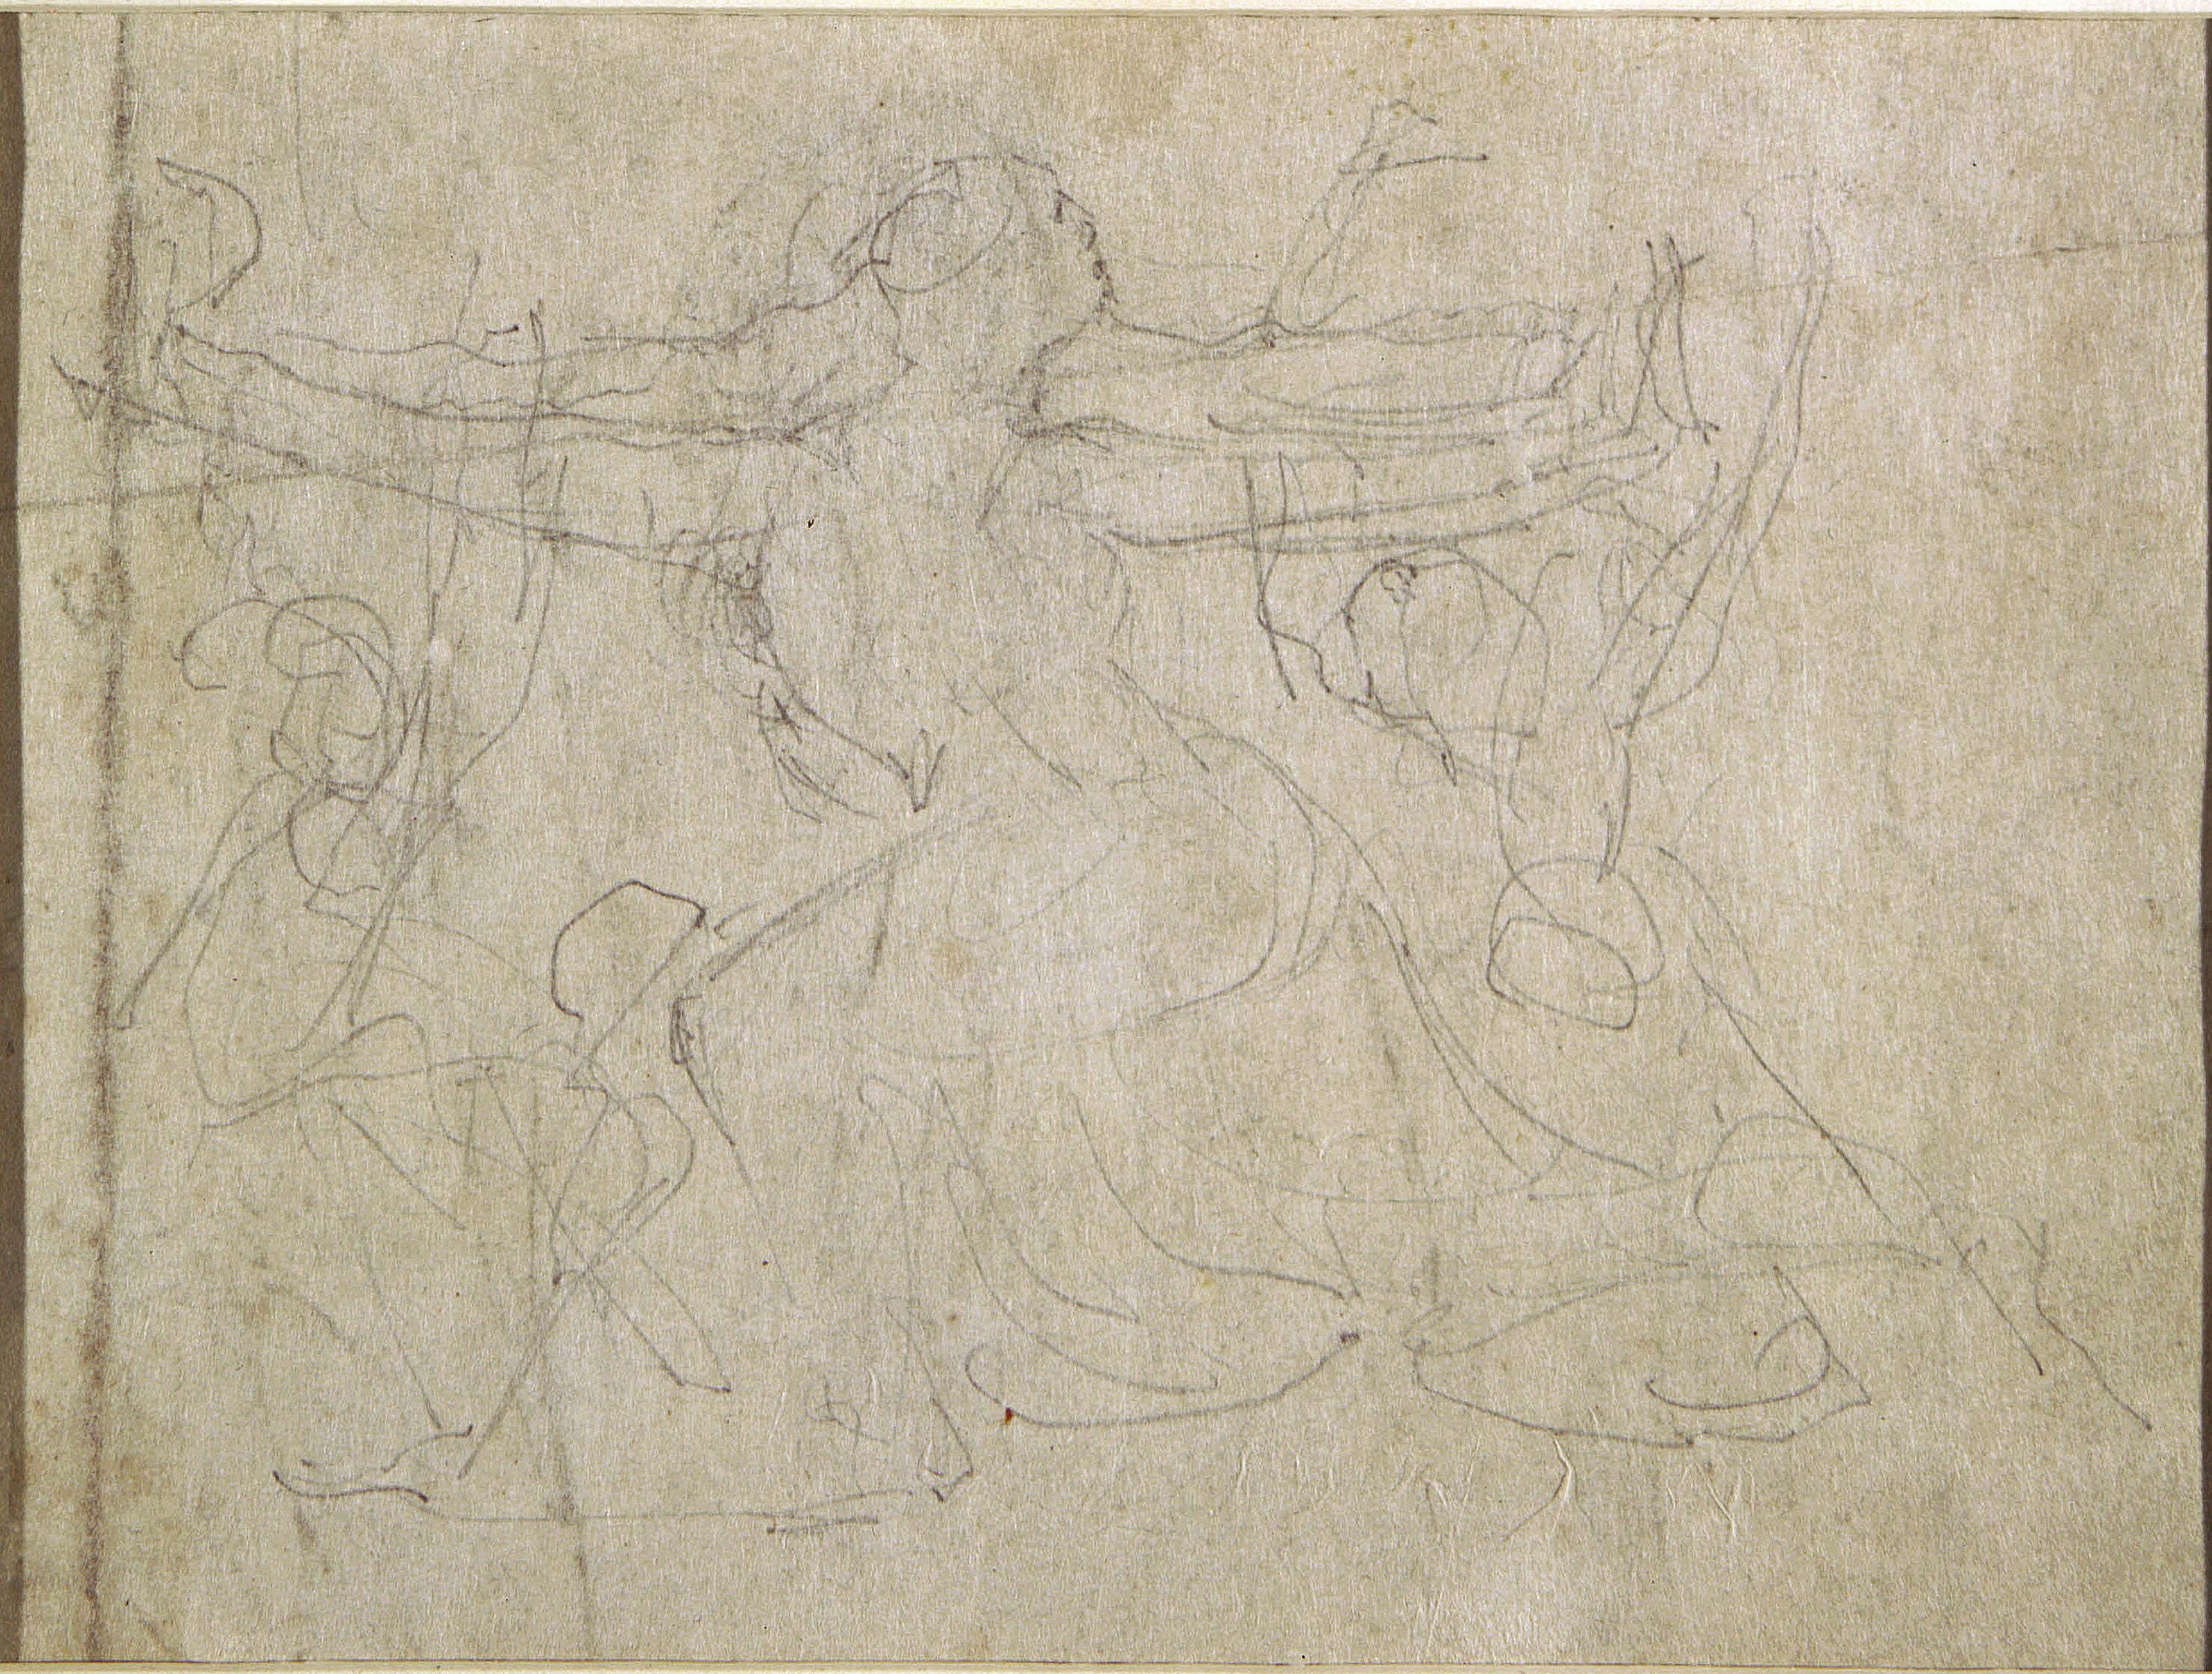 blake in the marketplace 1985 robert n essick blake an 2 blake verso of illus 1 showing an alternative sketch for the kneeling figure lower center in the recto design pencil approx 15 5 24 cm